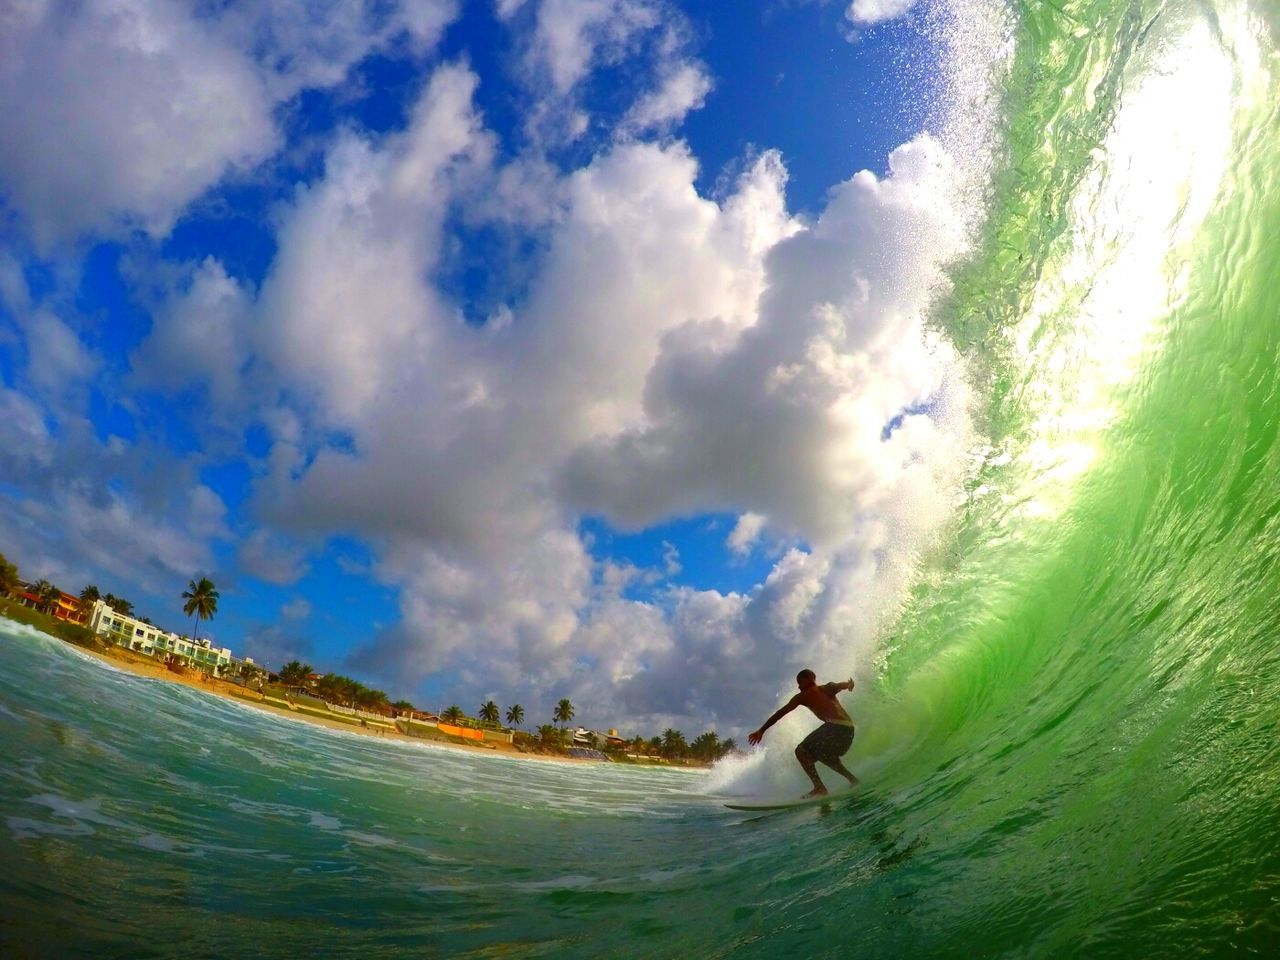 water, real people, cloud - sky, sky, leisure activity, sea, one person, vacations, outdoors, beach, surfing, nature, day, lifestyles, men, wave, adventure, motion, full length, fish-eye lens, horizon over water, extreme sports, beauty in nature, people